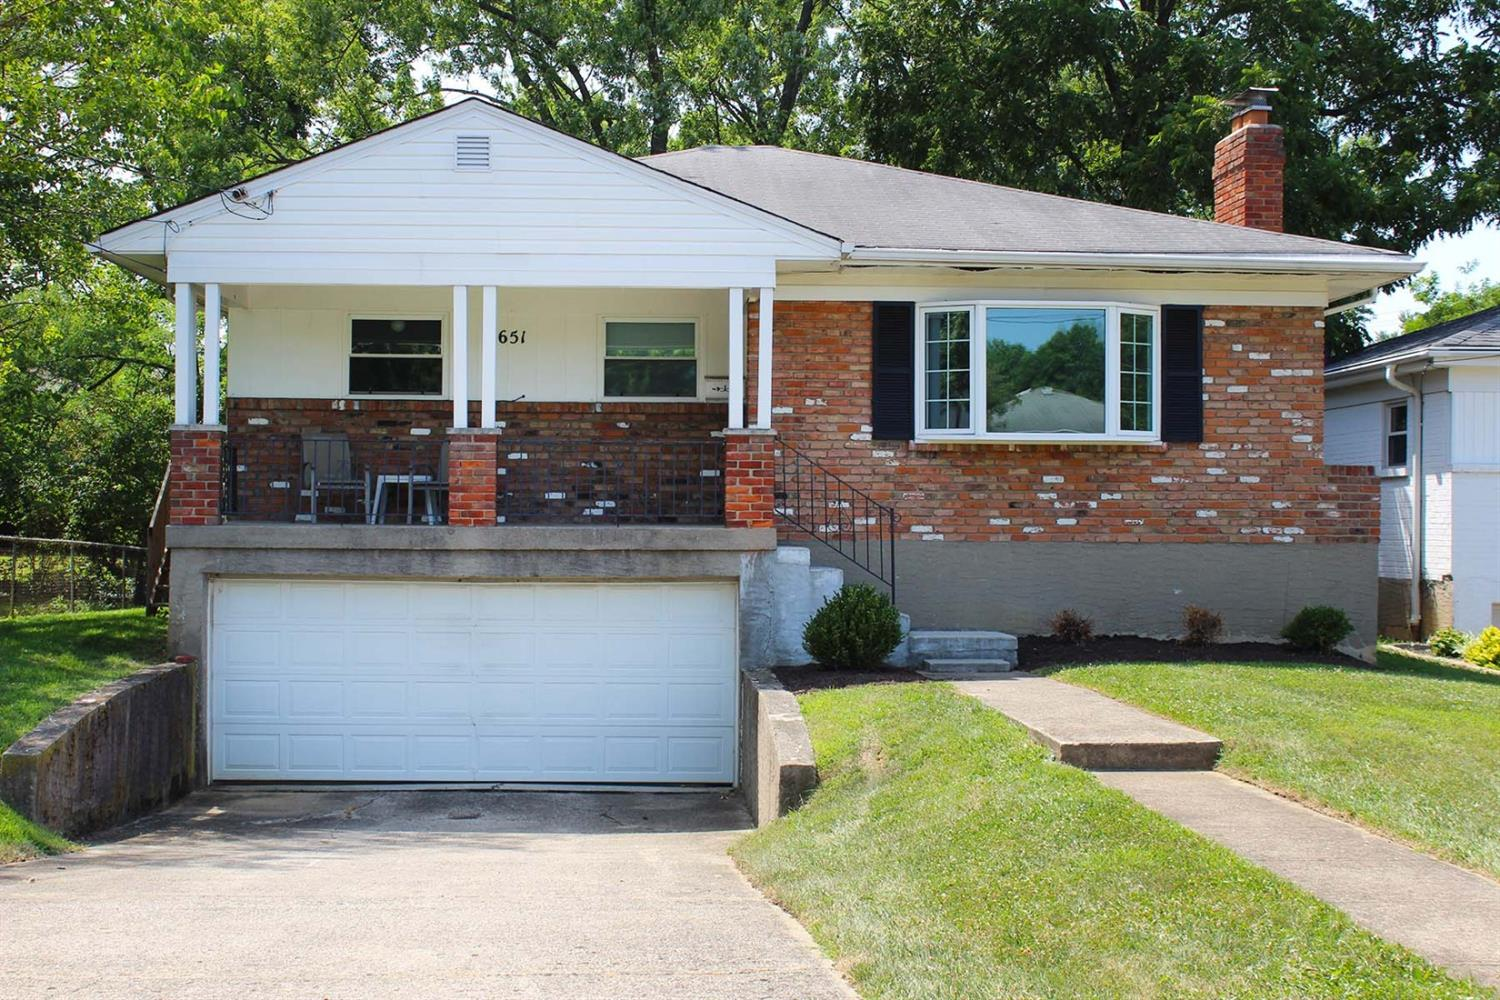 7651 Spirea Dr Sycamore Twp., OH